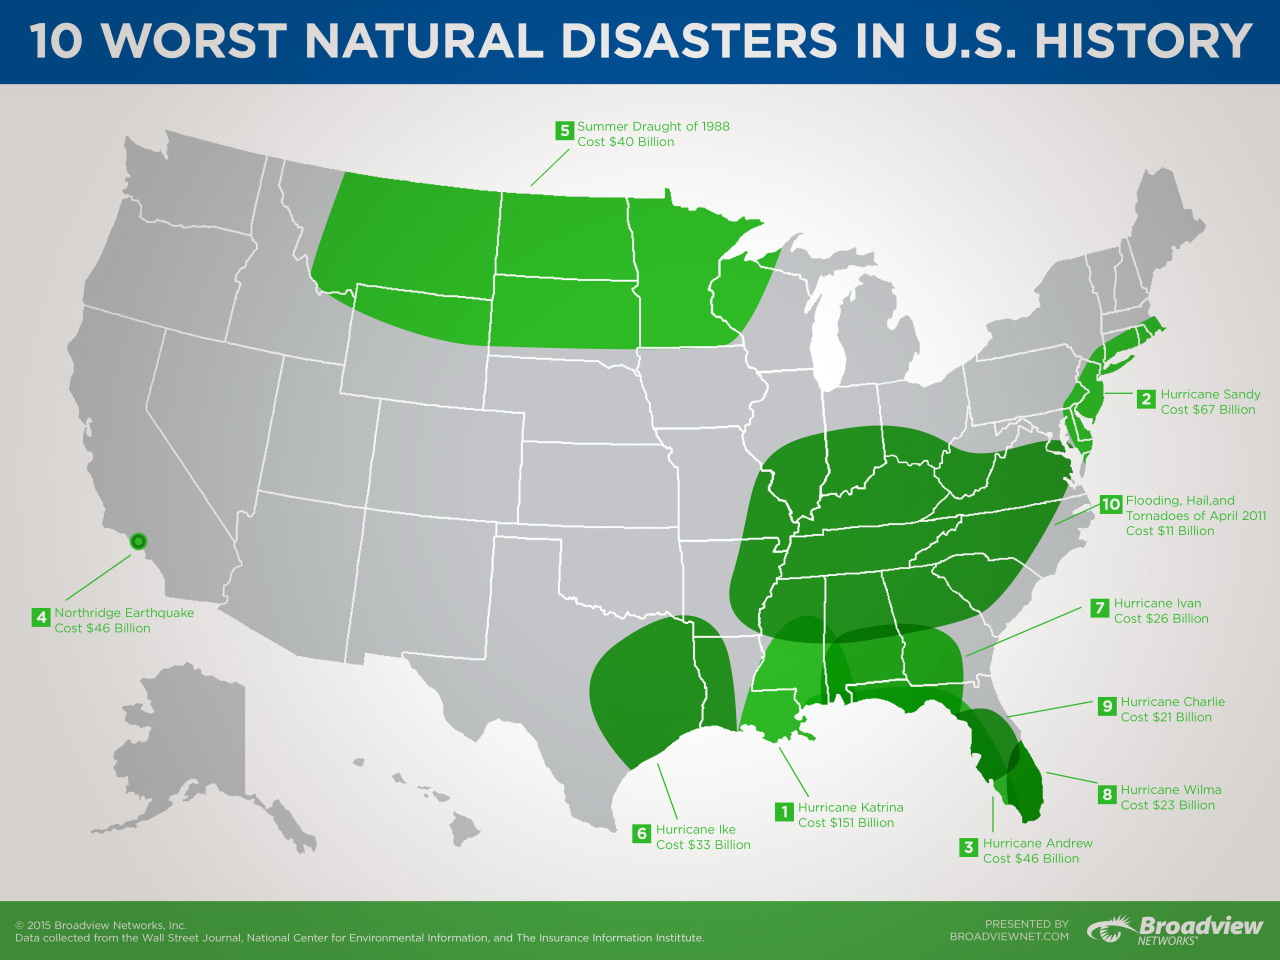 10 Worst Disasters In U.S. History